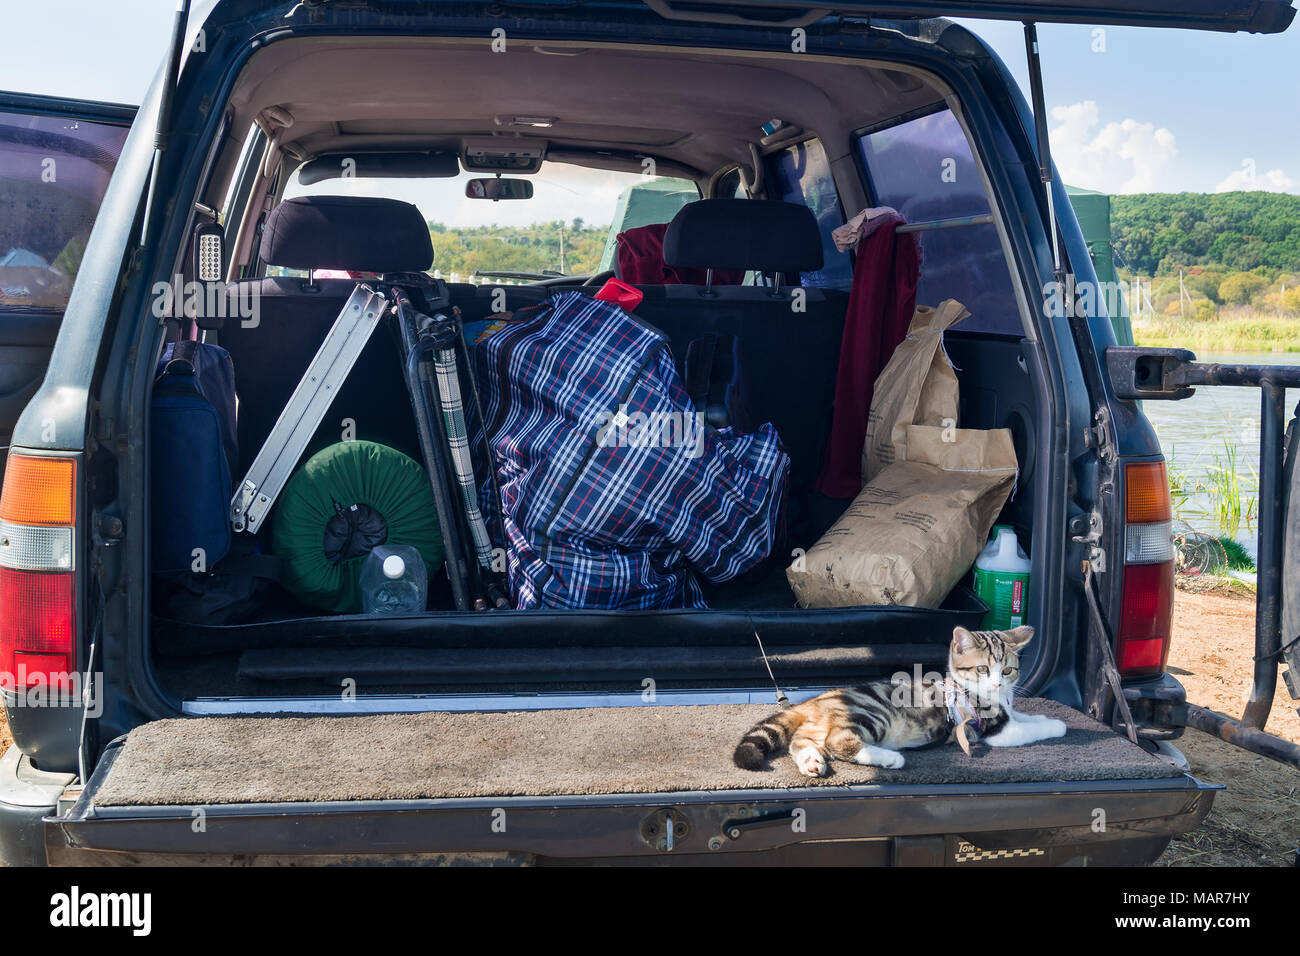 Things in the trunk of the car are prepared for transportation and travel on vacation - Stock Image